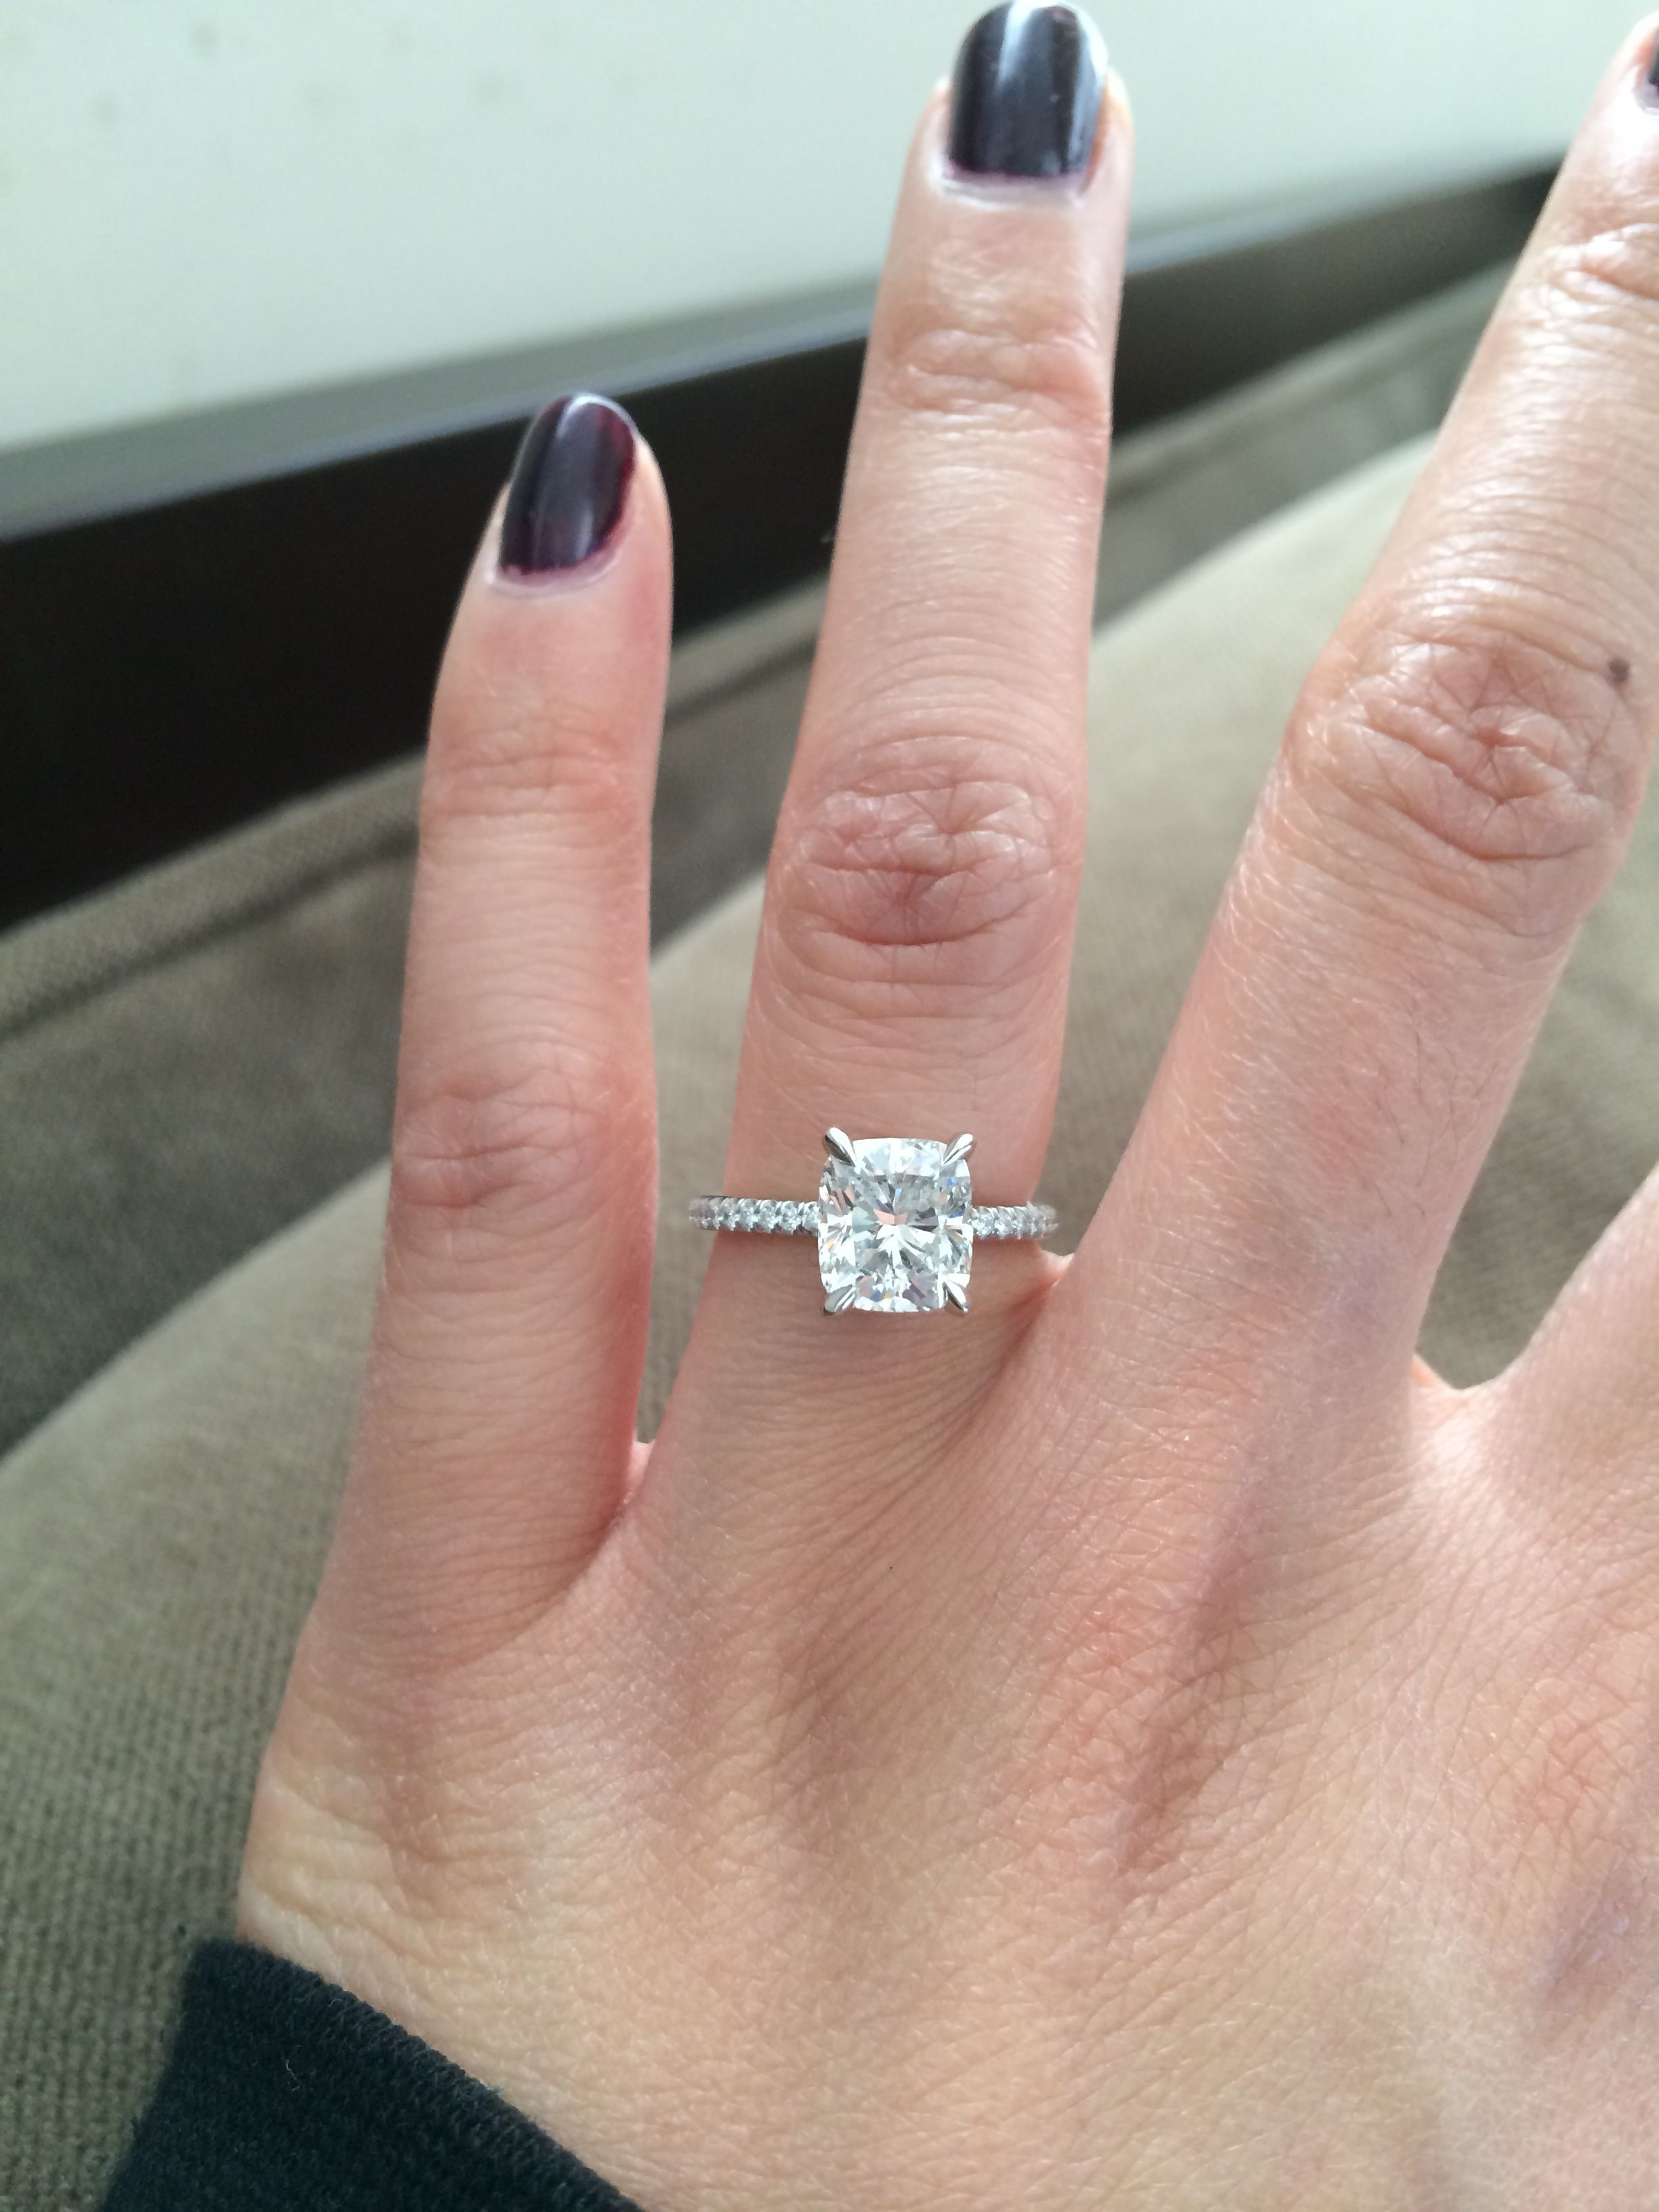 Looking for pics w/ a 1.5-1.8 cushion cut diamond preferably on a ...